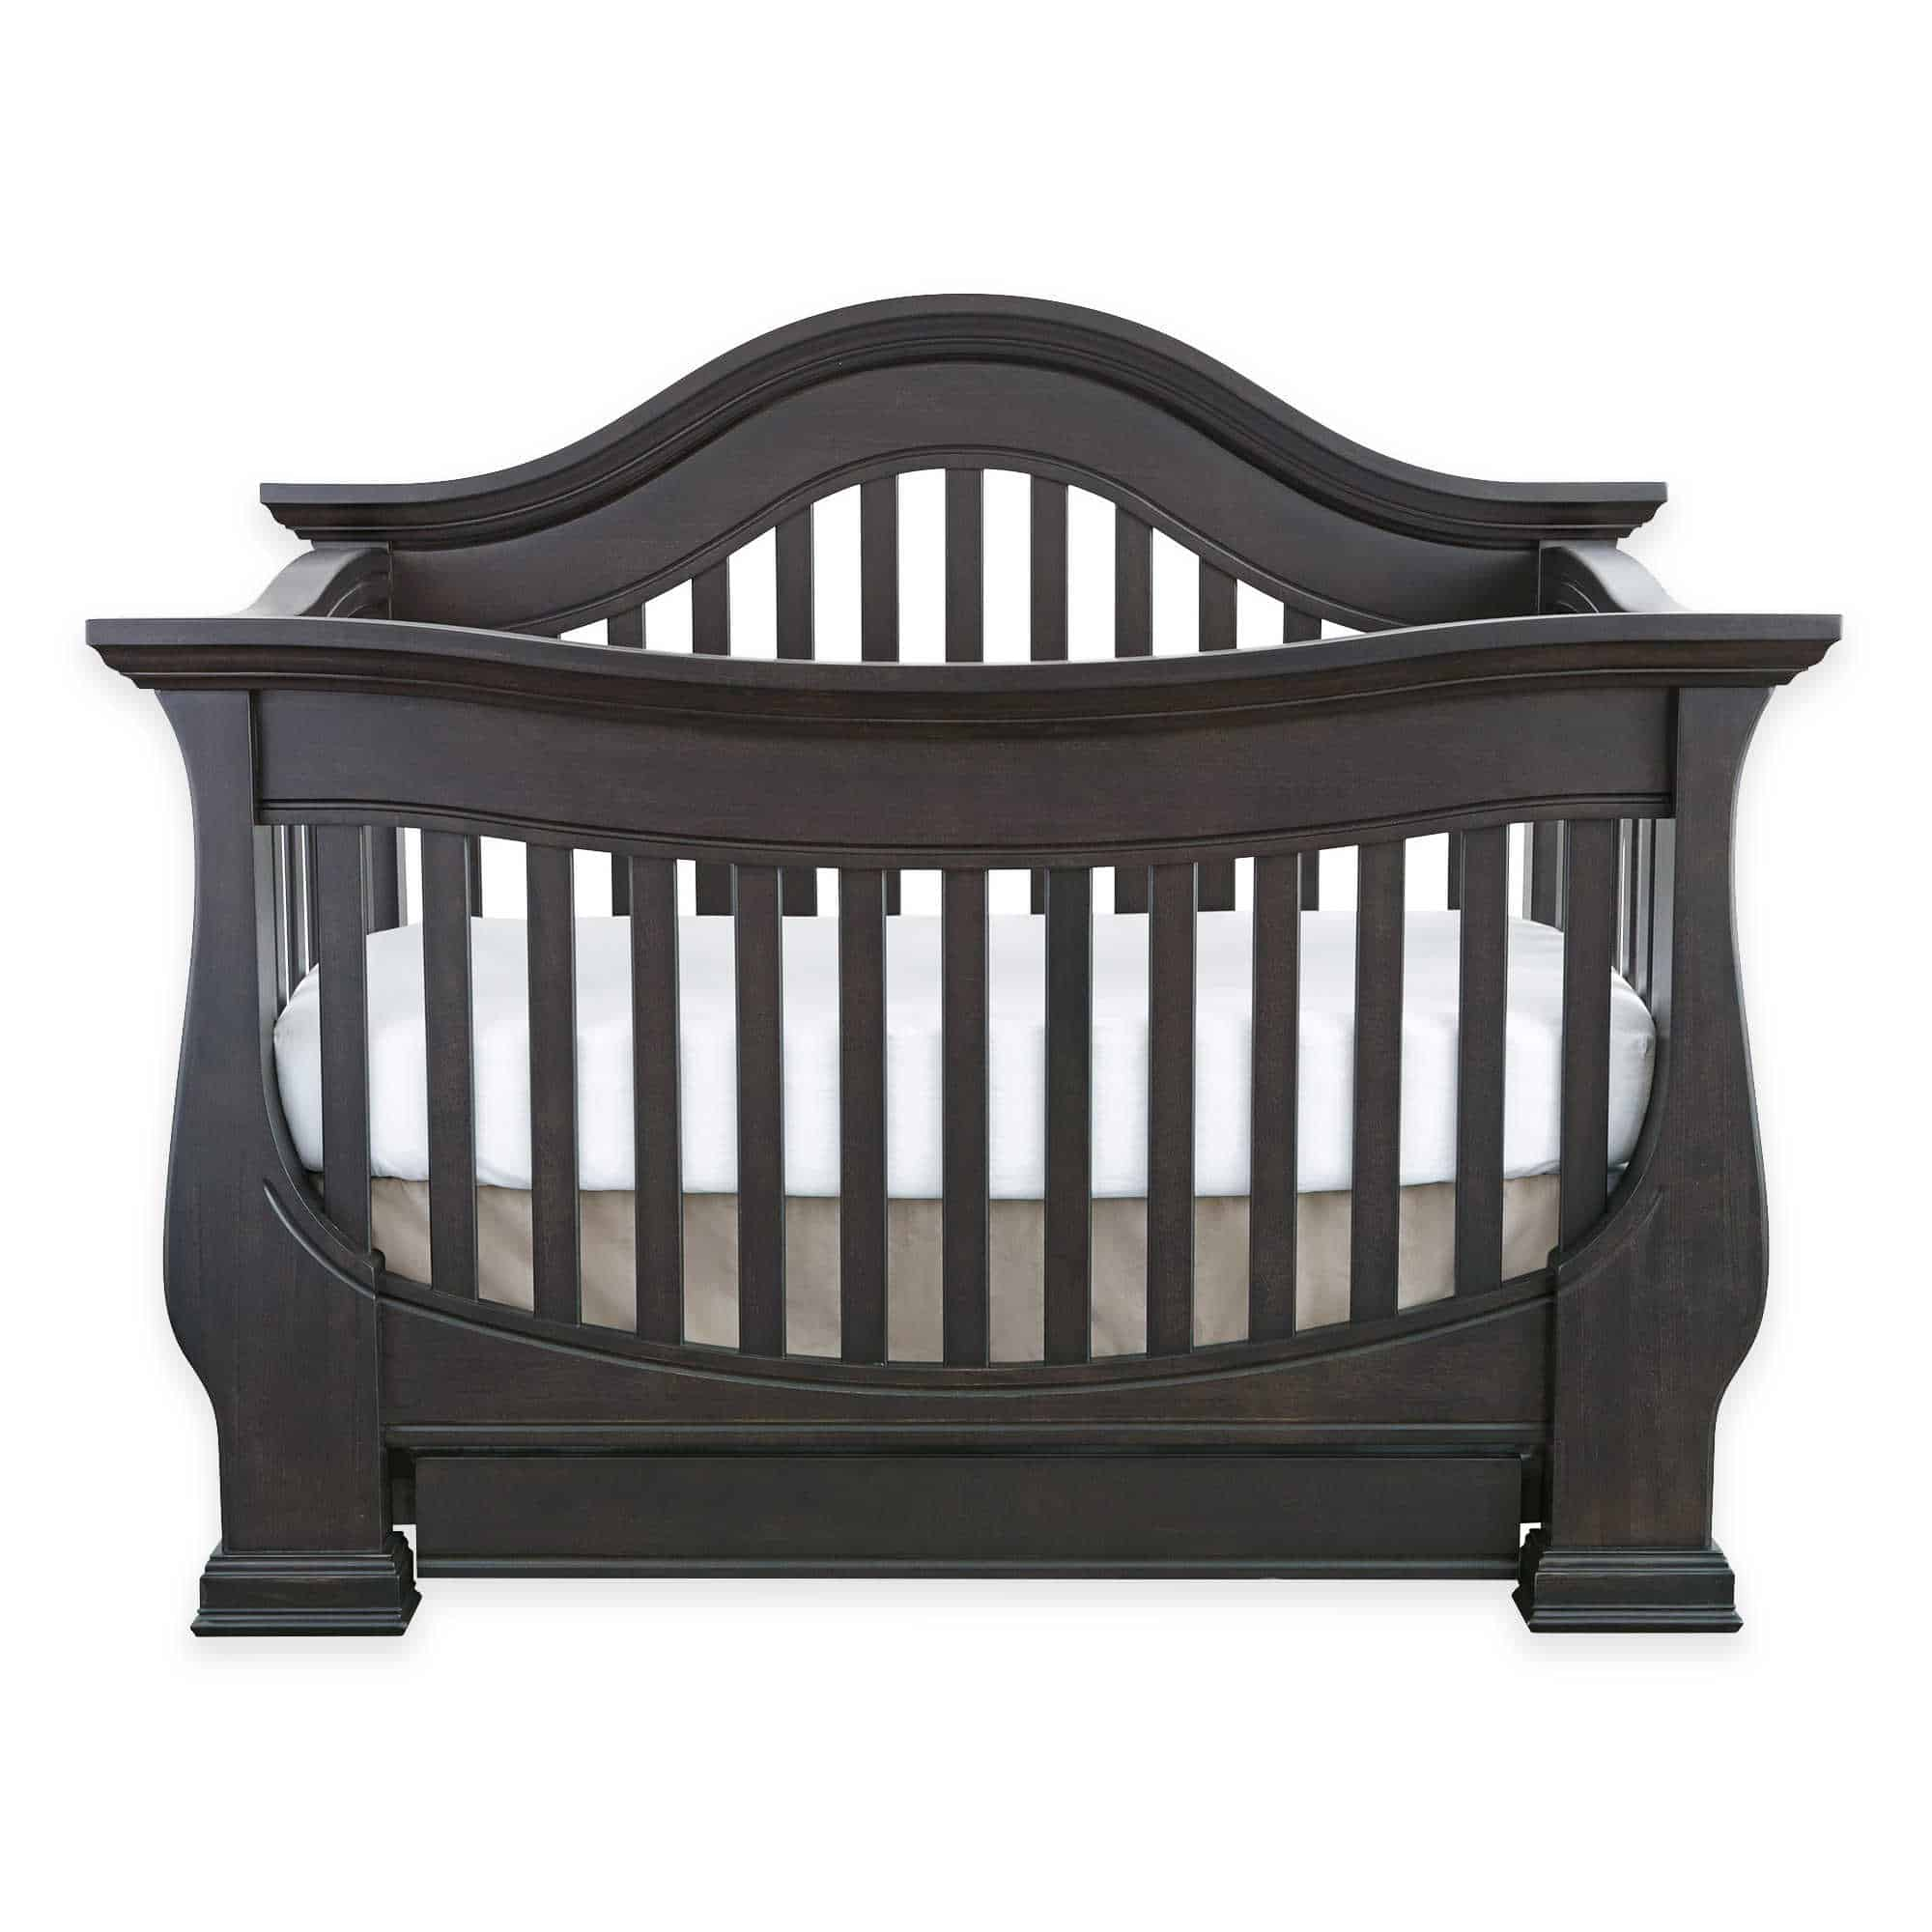 Crib brand review: Baby Appleseed / Karla Dubois / Nursery Smart / Eco-Chic Baby